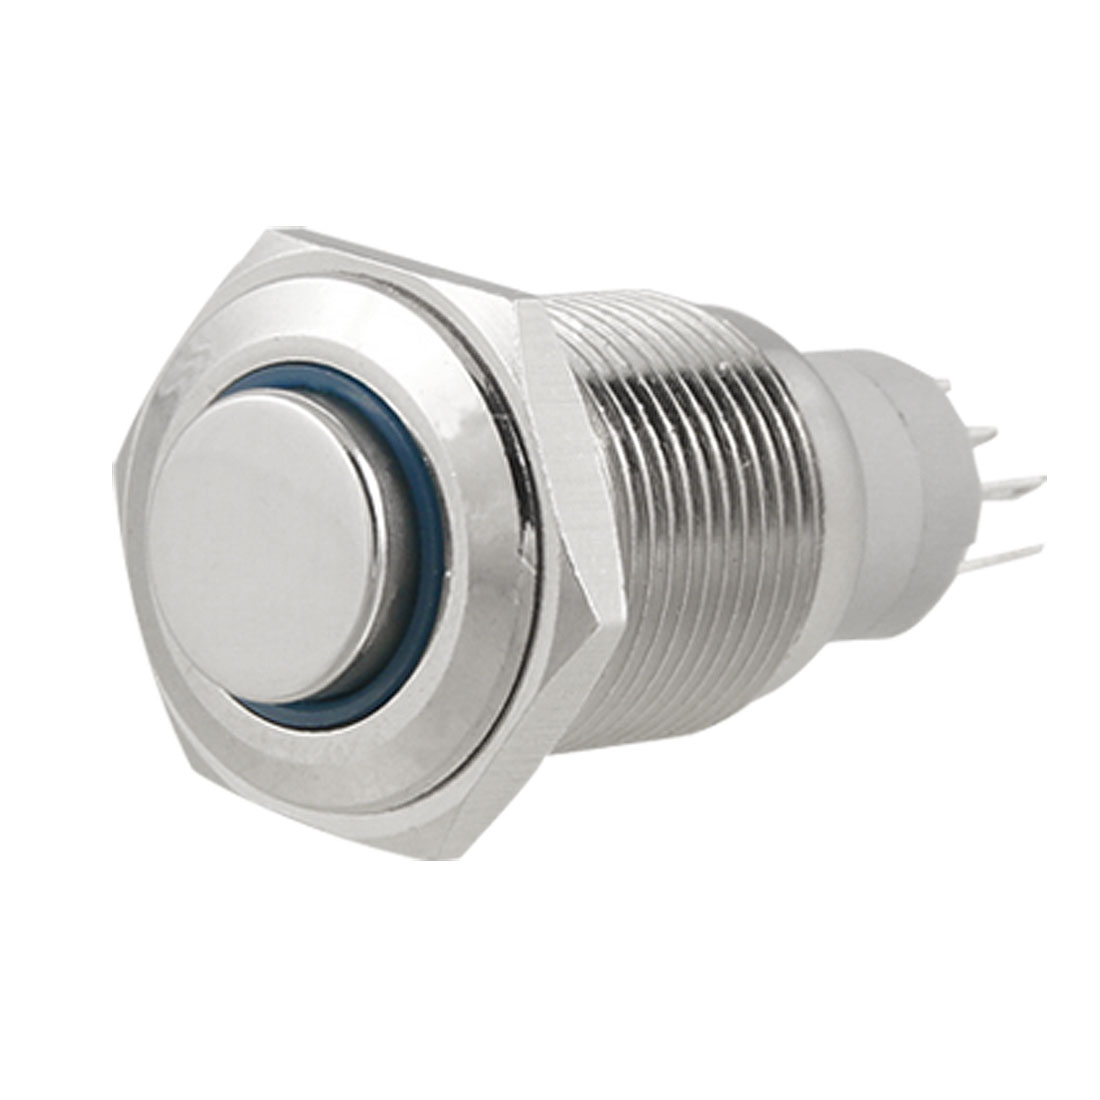 Blue LED Ring Light Lamp 12V 16mm Stainless Steel Momentary Push Button Switch 5 Pin SPDT